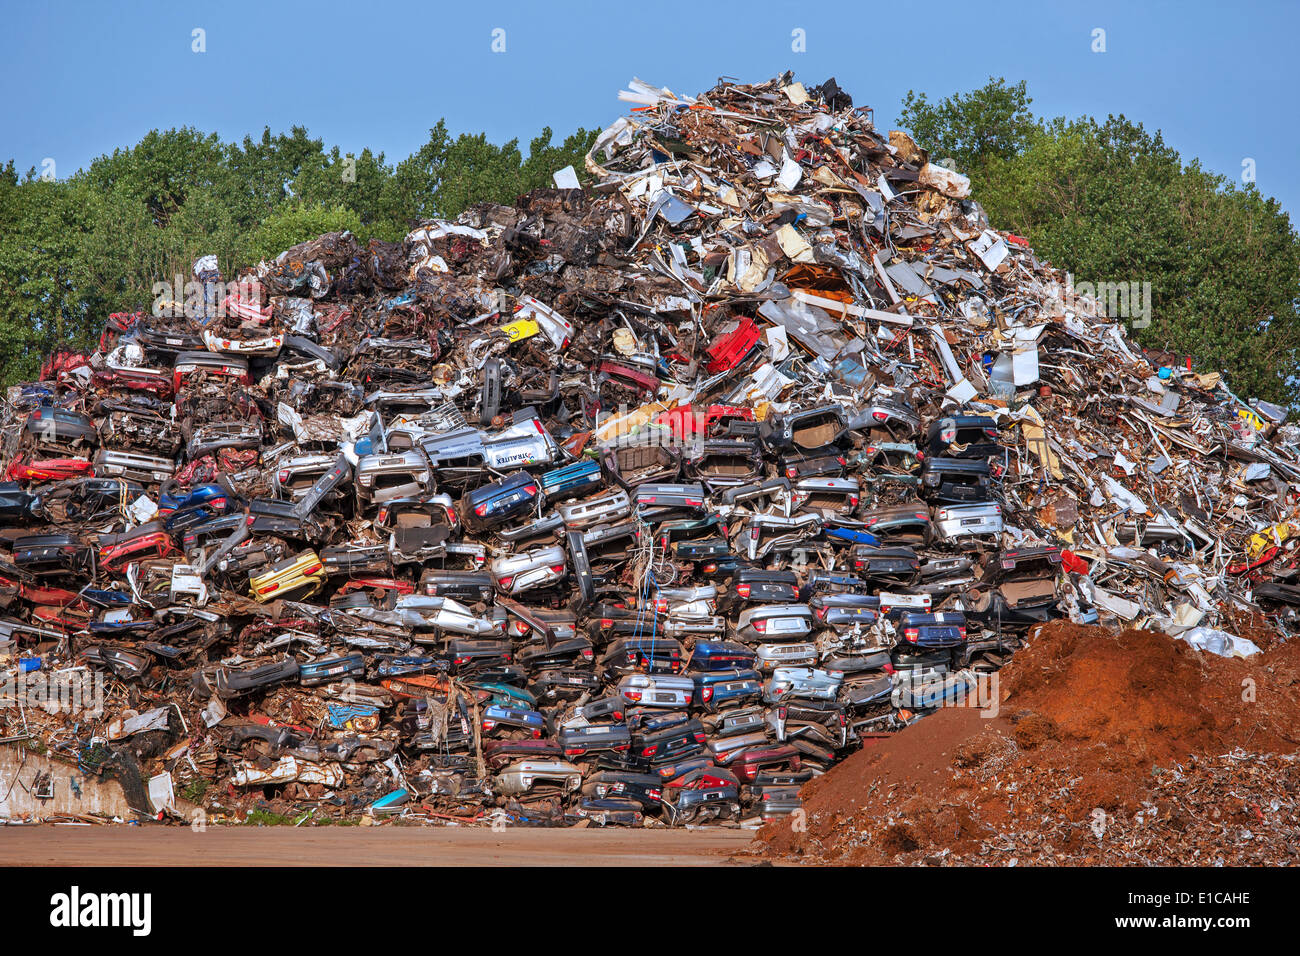 Cars piled up for recycling into scrap metal at junkyard - Stock Image